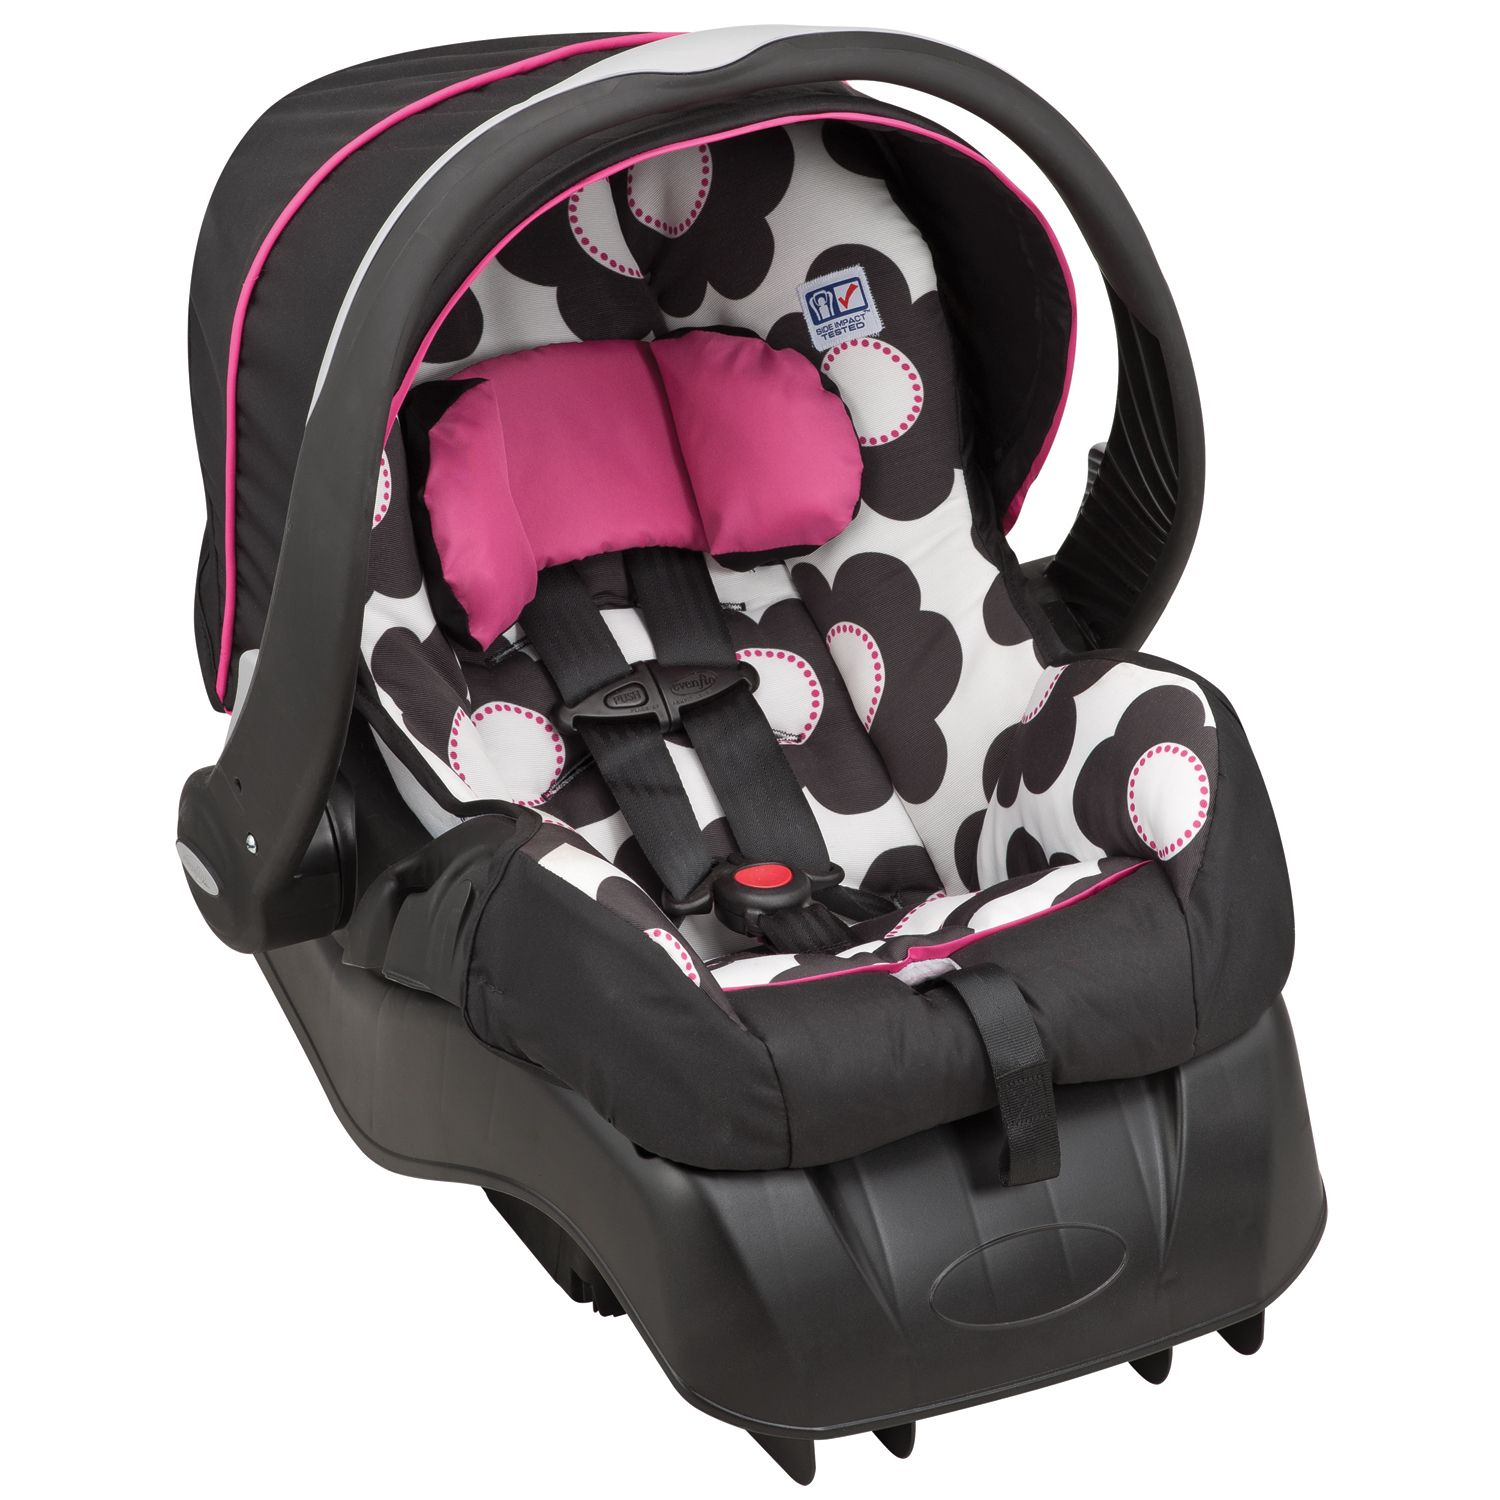 evenflo discovery car seat recall. Black Bedroom Furniture Sets. Home Design Ideas